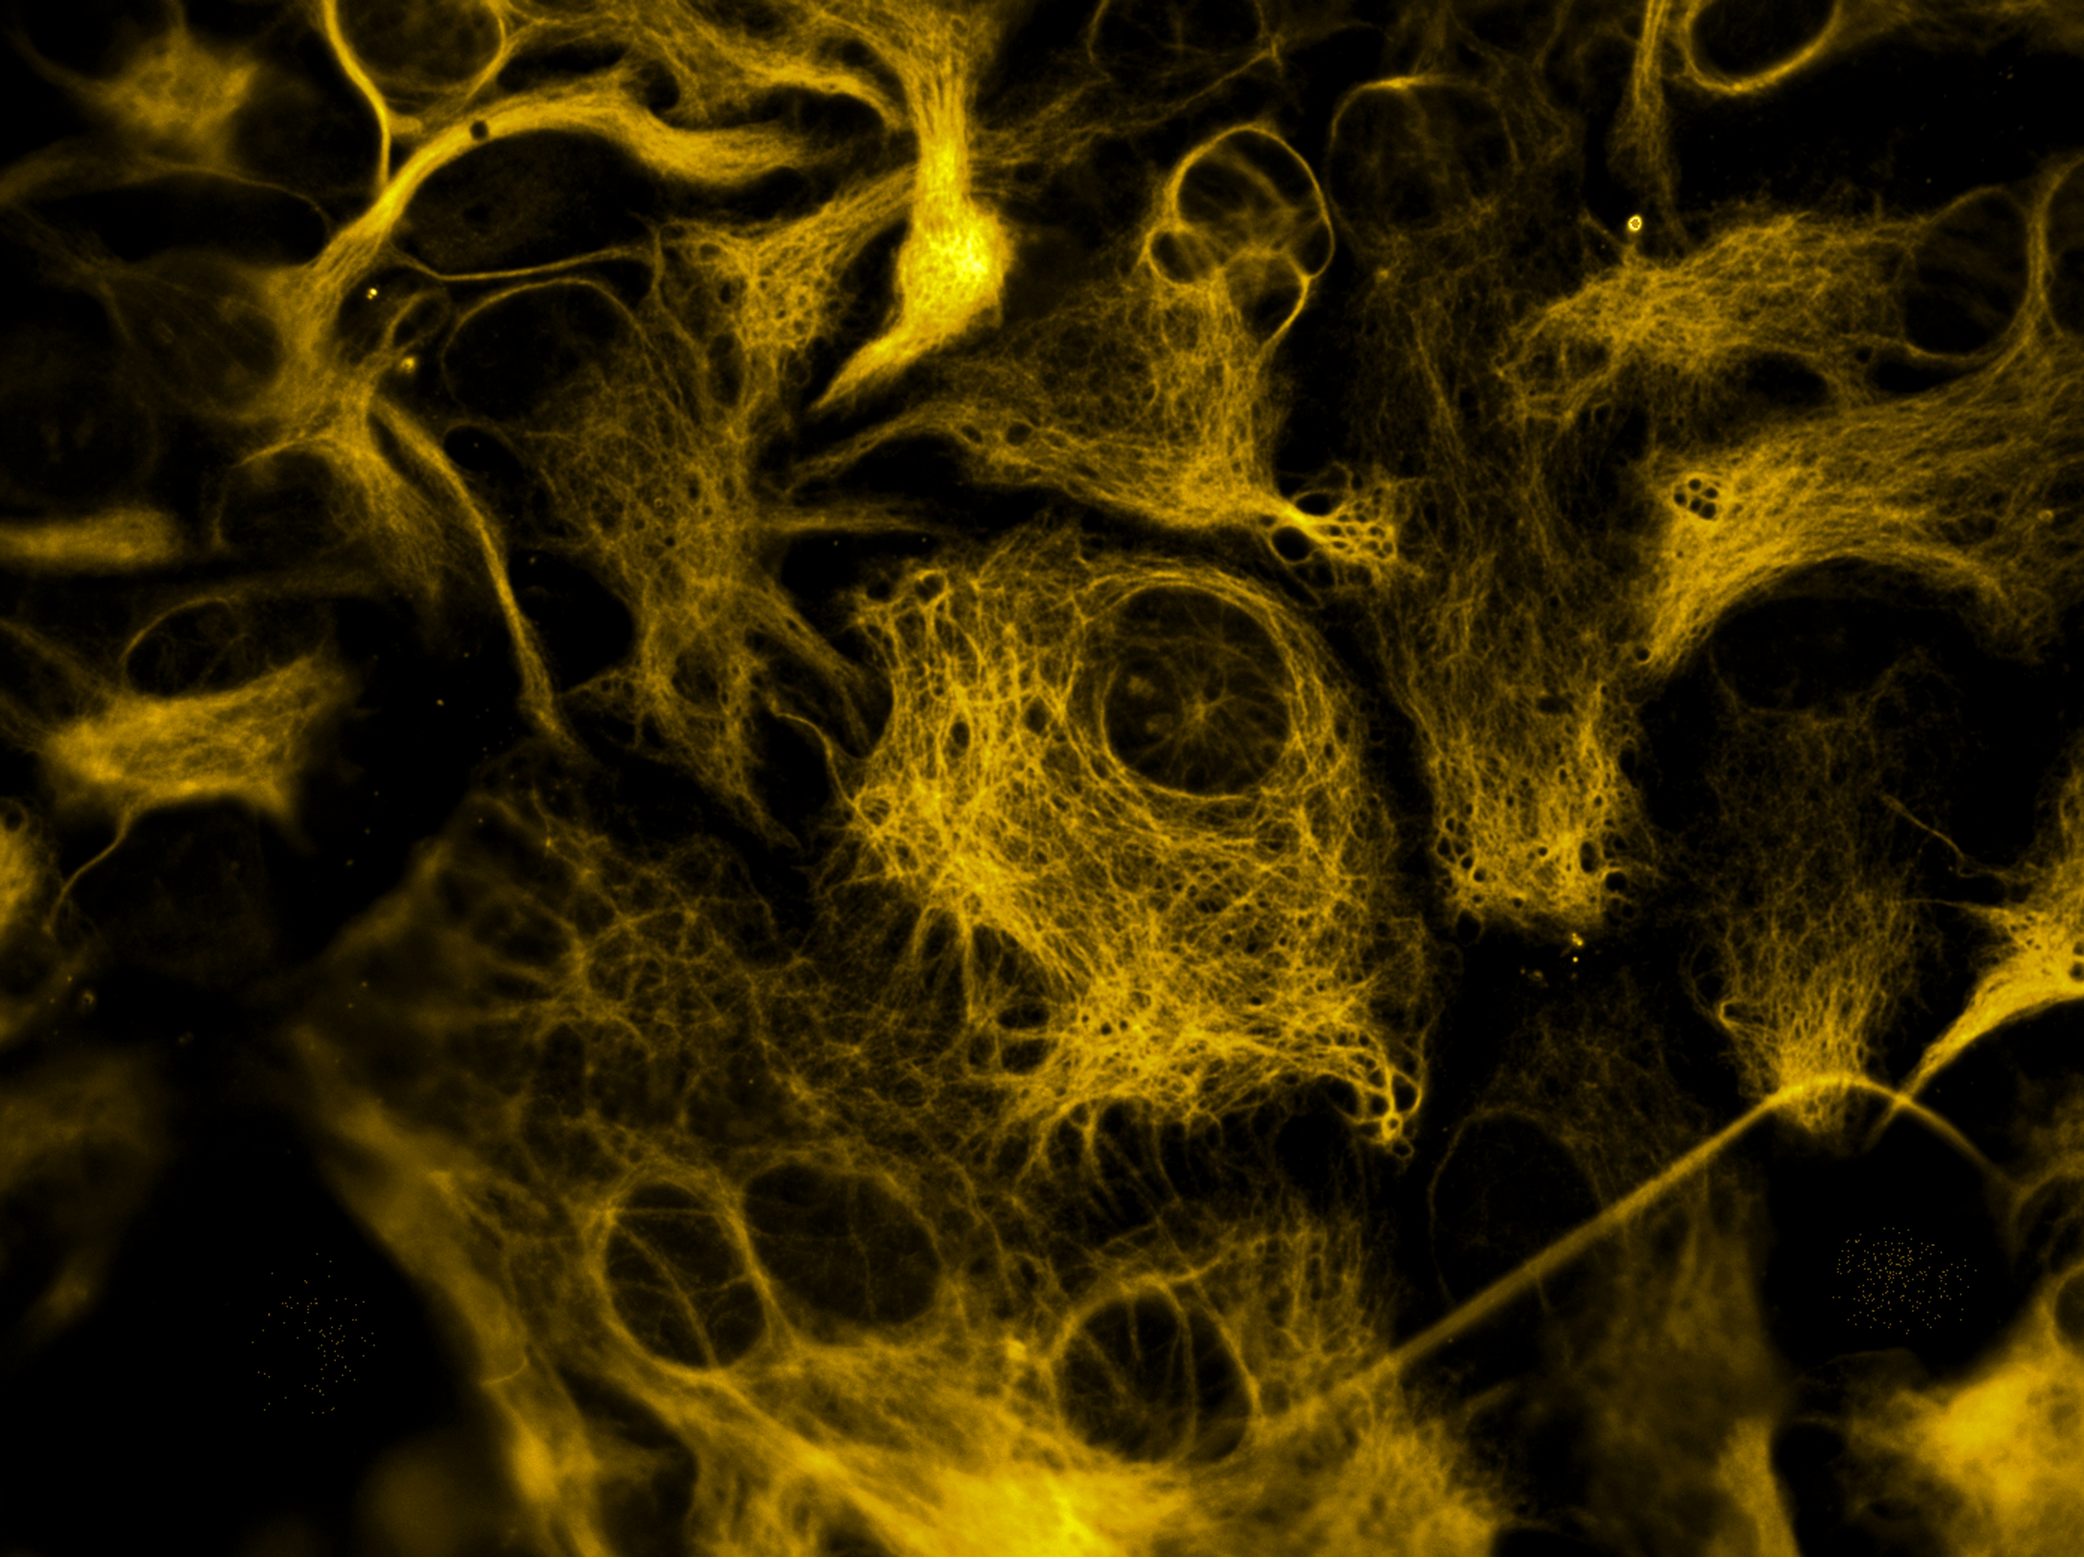 A microscope image showing orange coloured brain cells called astrocytes